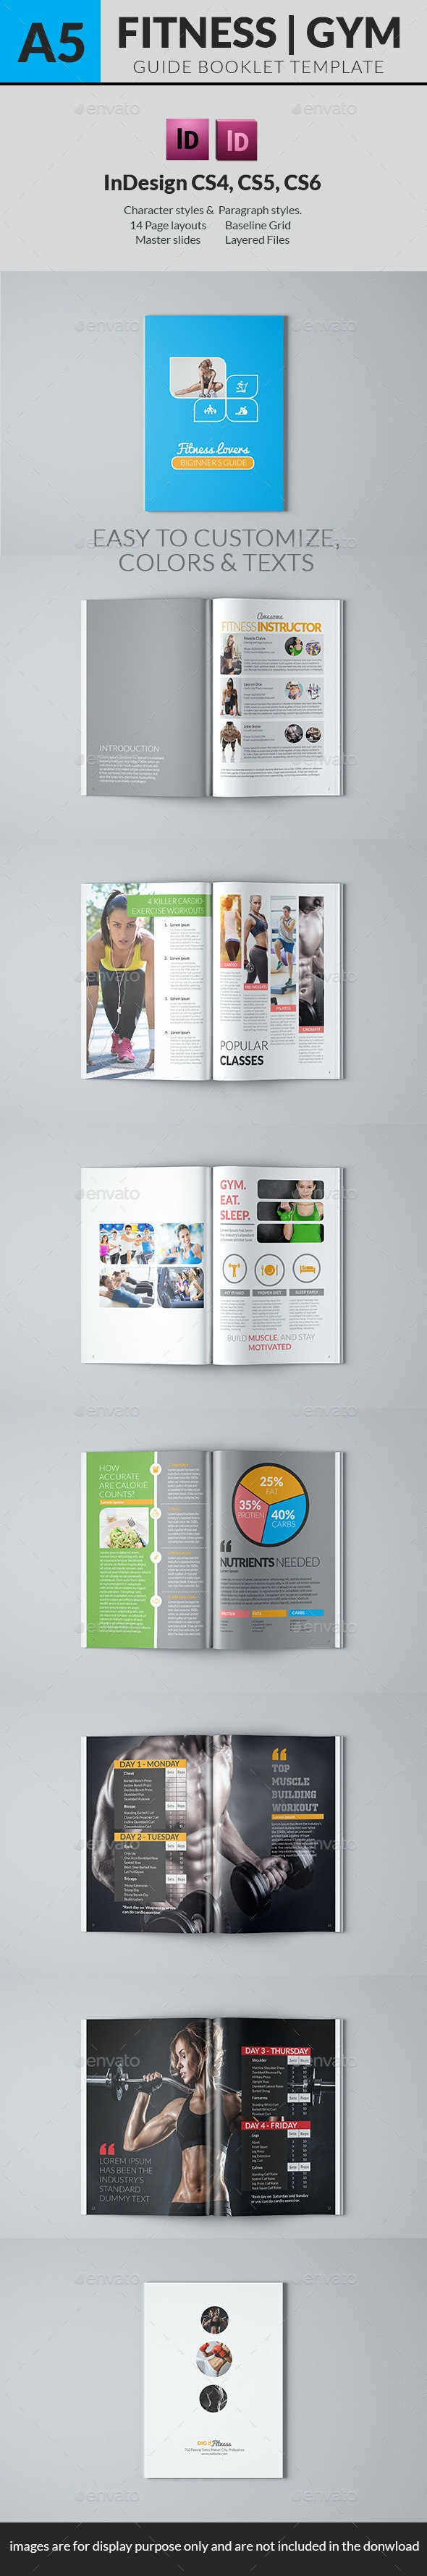 Fitness Lovers Guide Book Template - Informational Brochures